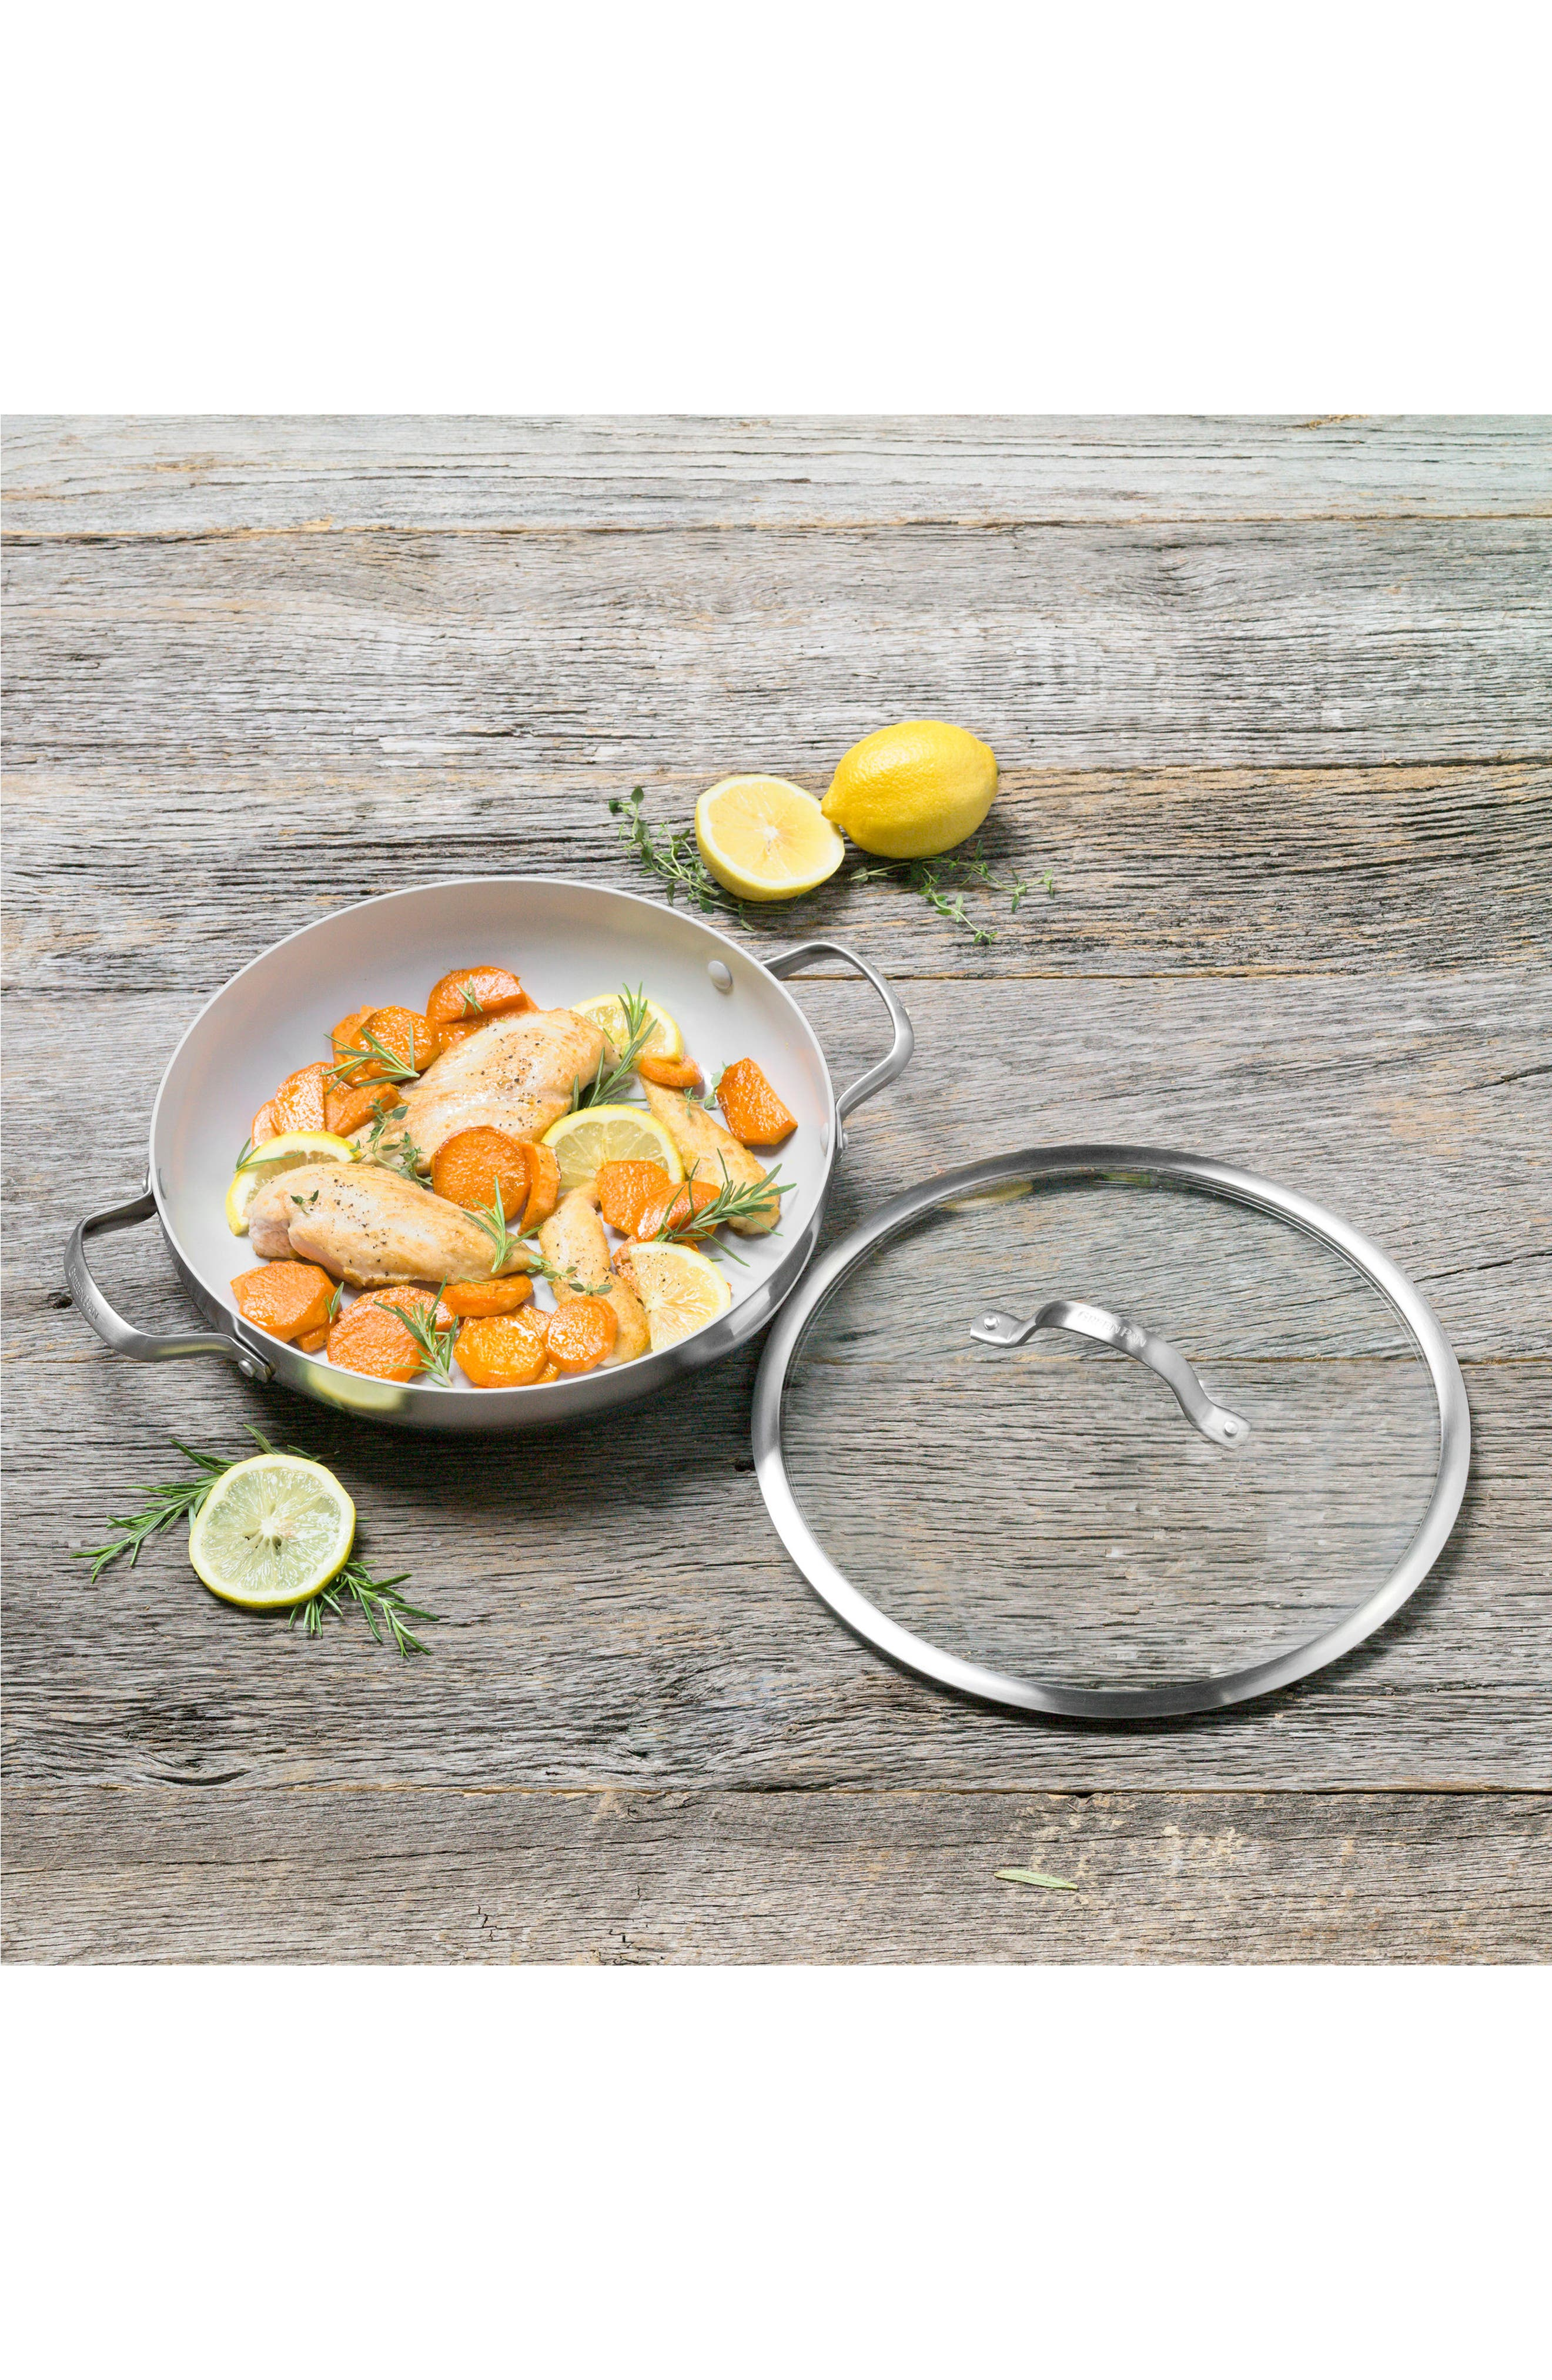 GREENPAN, Venice Pro 12-Inch Multilayer Stainless Steel Ceramic Nonstick Sauté Pan with Glass Lid, Alternate thumbnail 3, color, STAINLESS STEEL